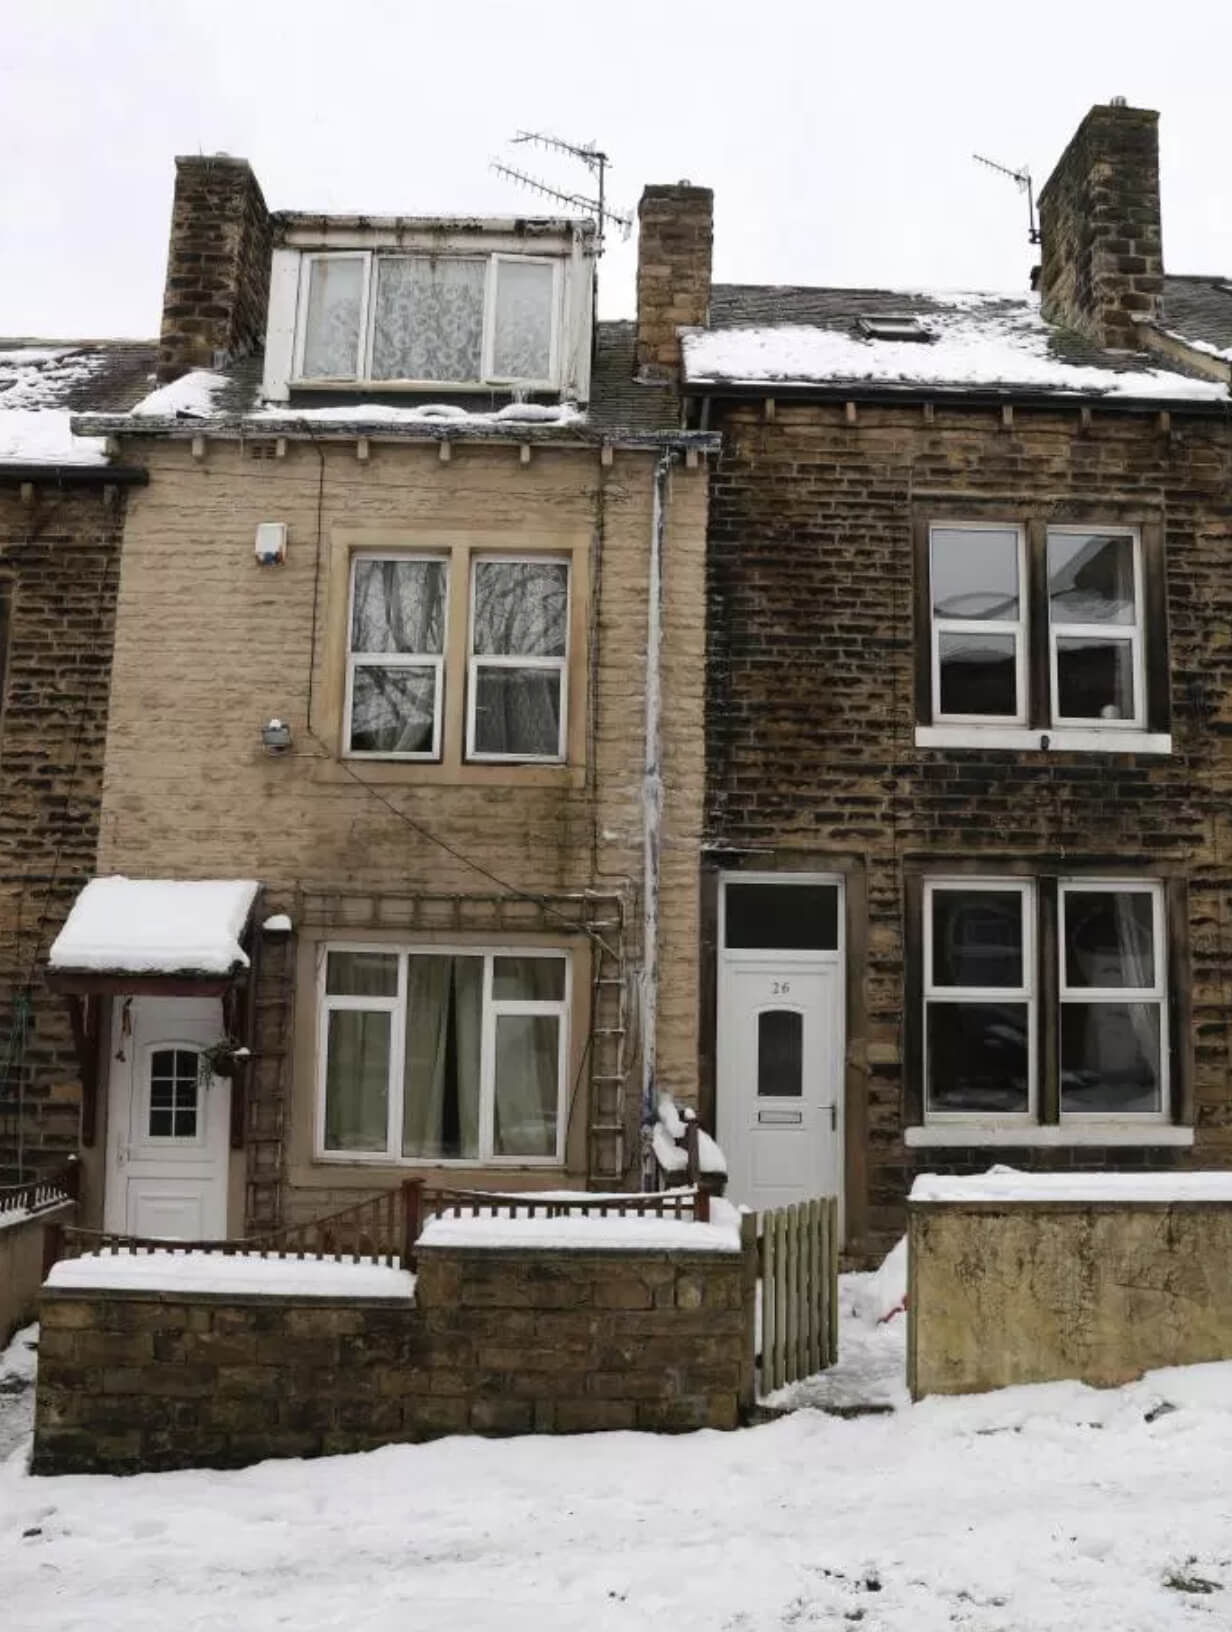 no snow on roof2 - Police uncover £80k cannabis farm after spotting roof with mysterious lack of snow..